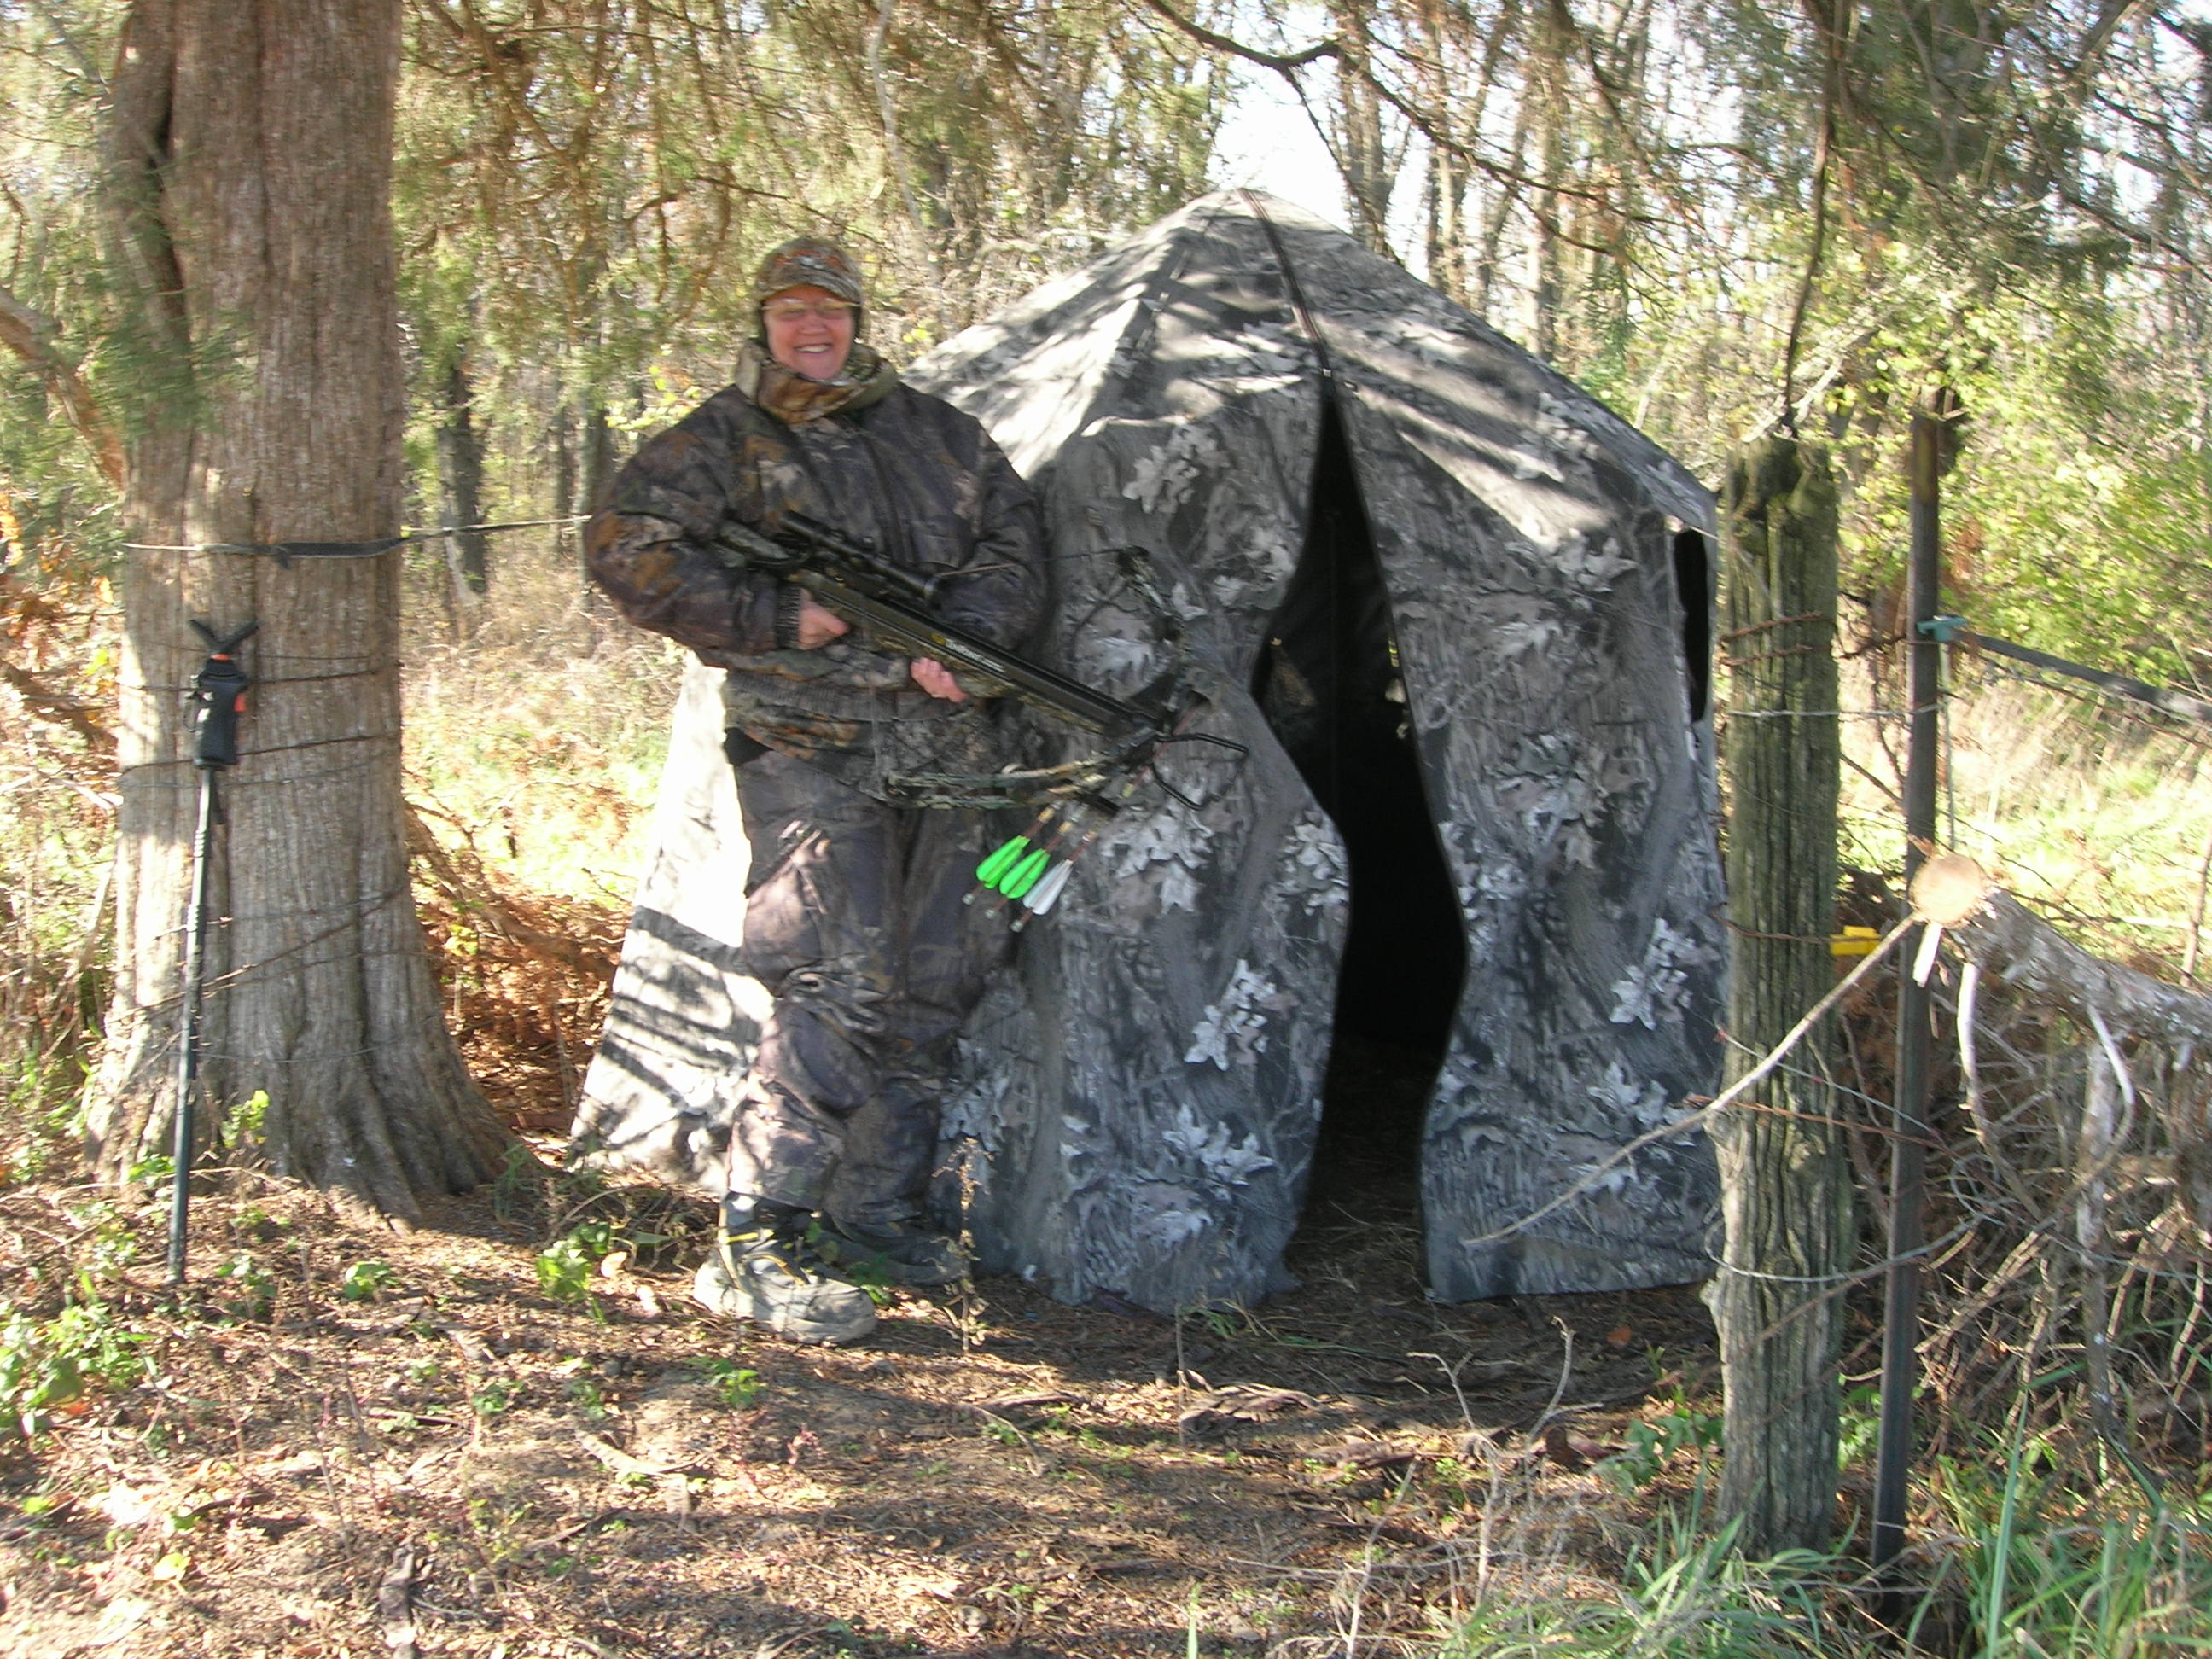 hunting the to going best outdoors gear all power deer terrific blind about youth reviews hunter ground share blinds